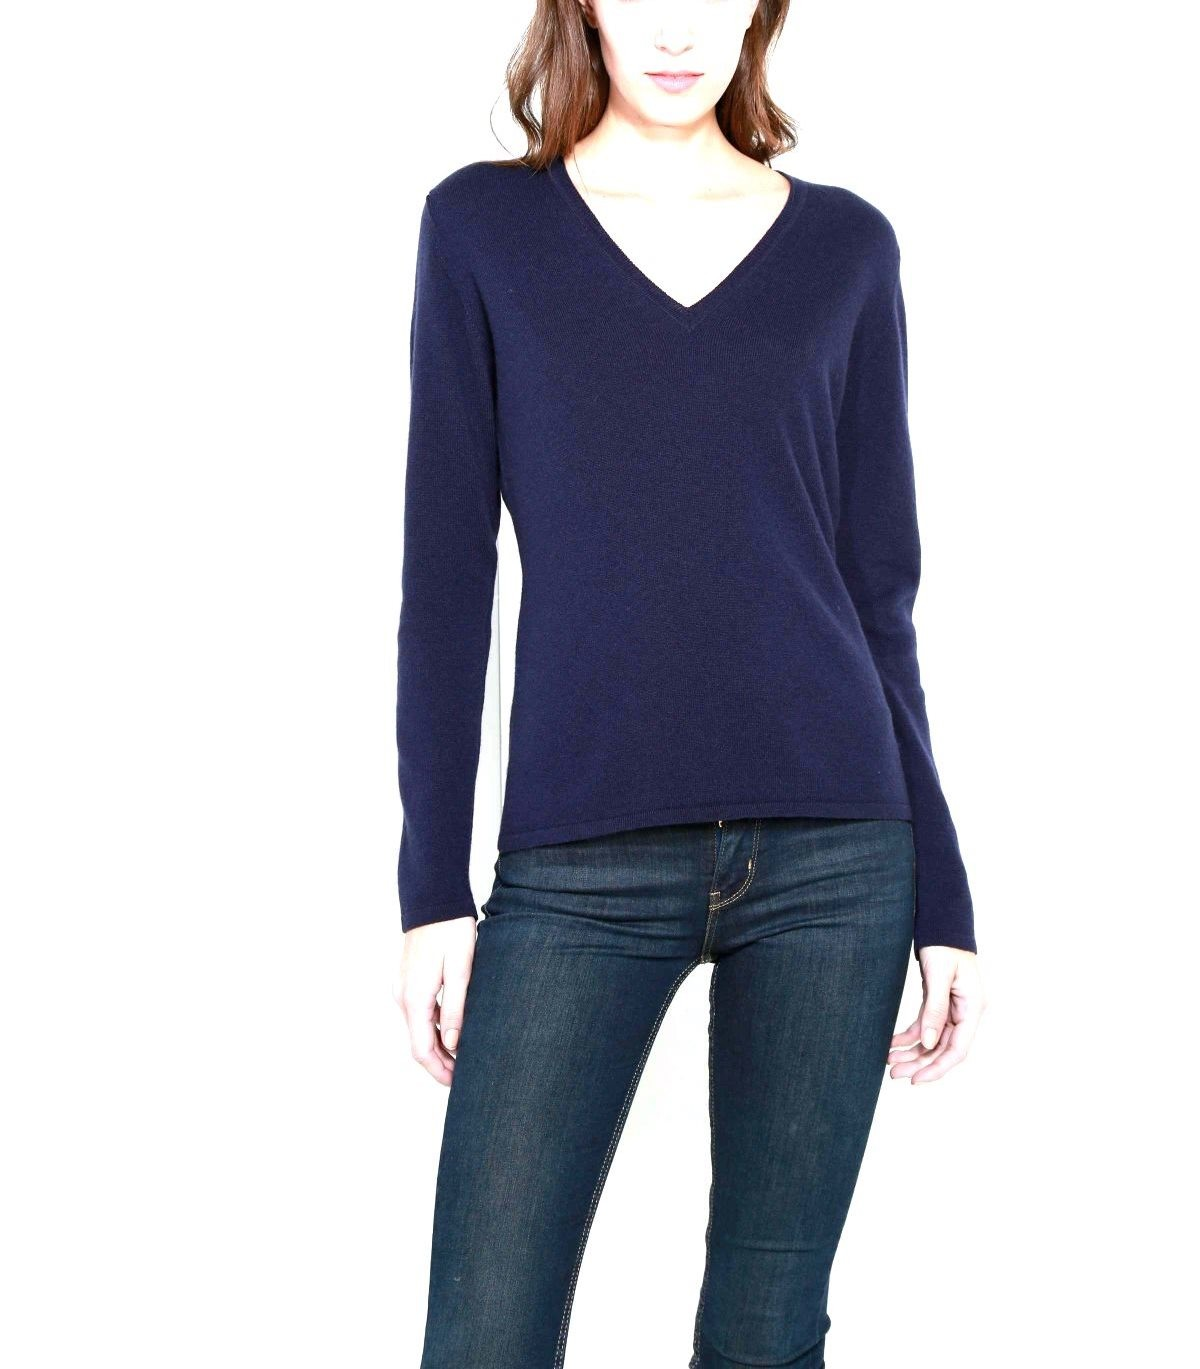 Ladies' V-Neck Sweater - 100% Cashmere Made in Scotland